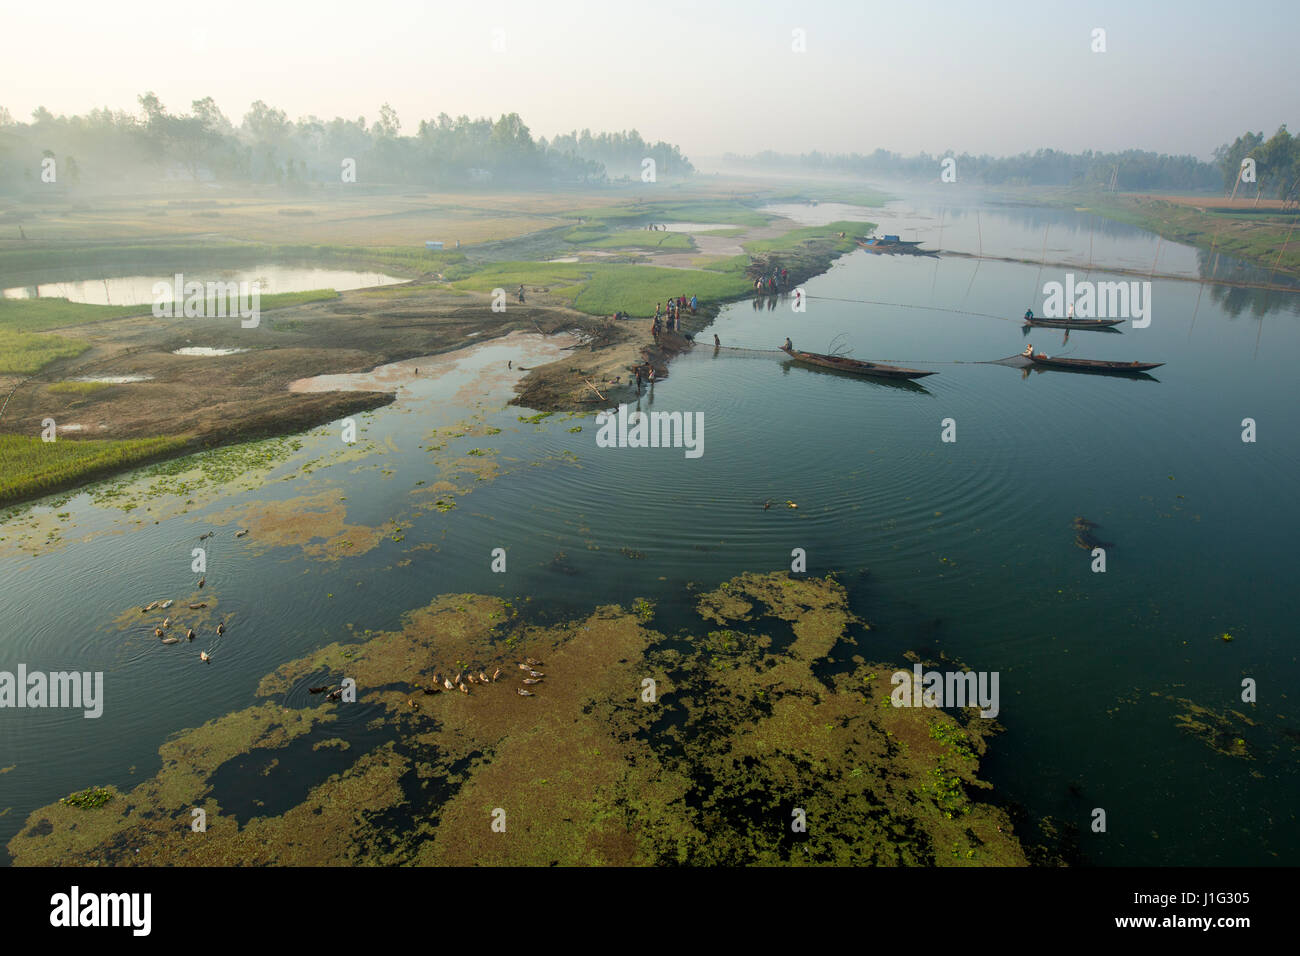 View of the dry Bangali River in Sariakandi. Bogra, Bangladesh. - Stock Image